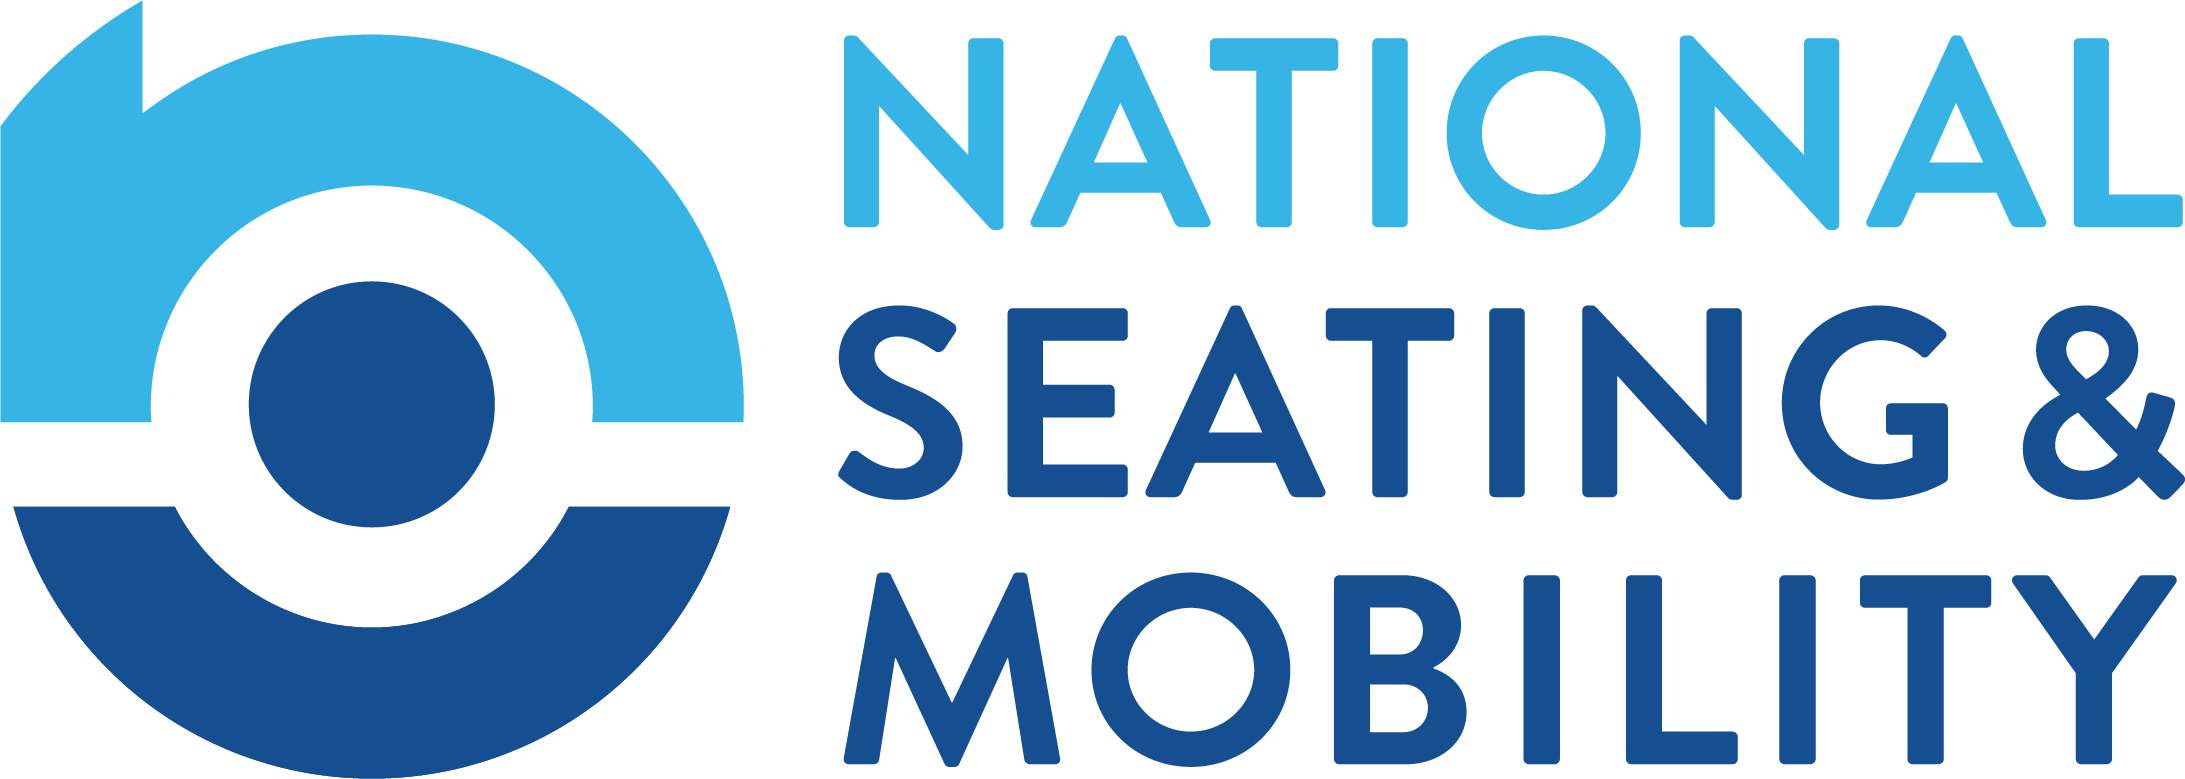 National Seating and Mobility  (Statewide)